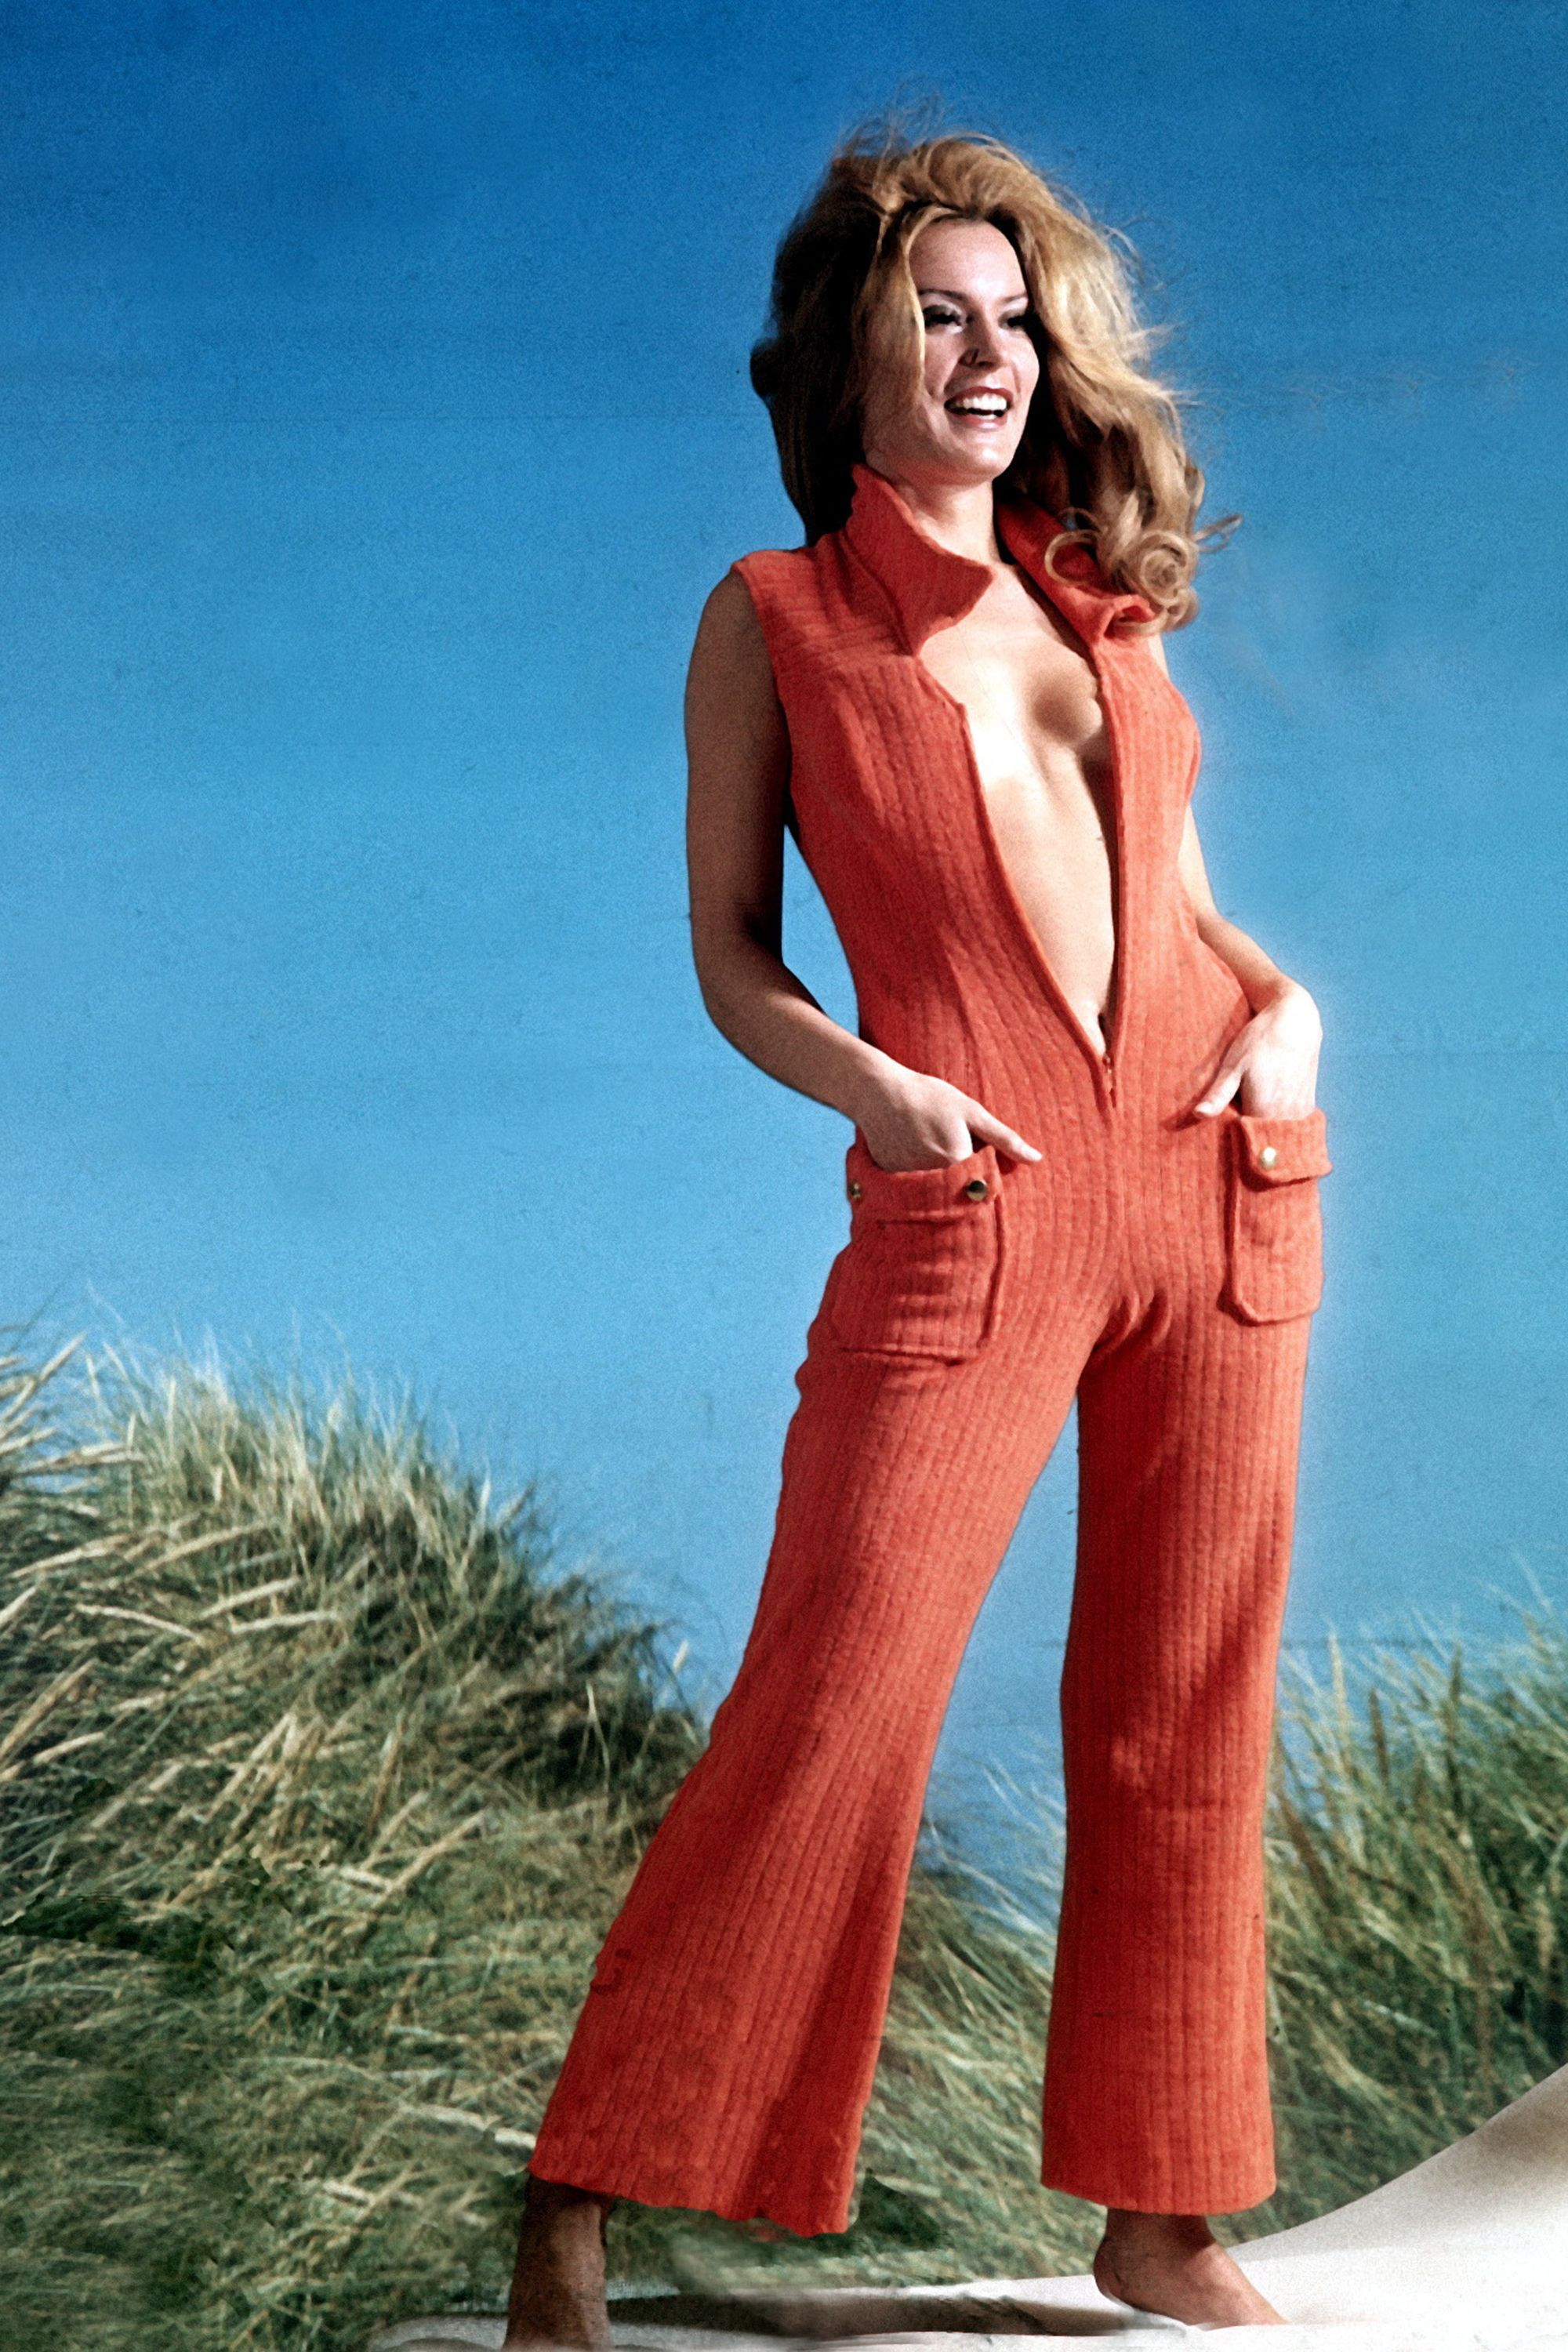 In Photos: '70s Style Inspiration | Fashion Inspiration ...